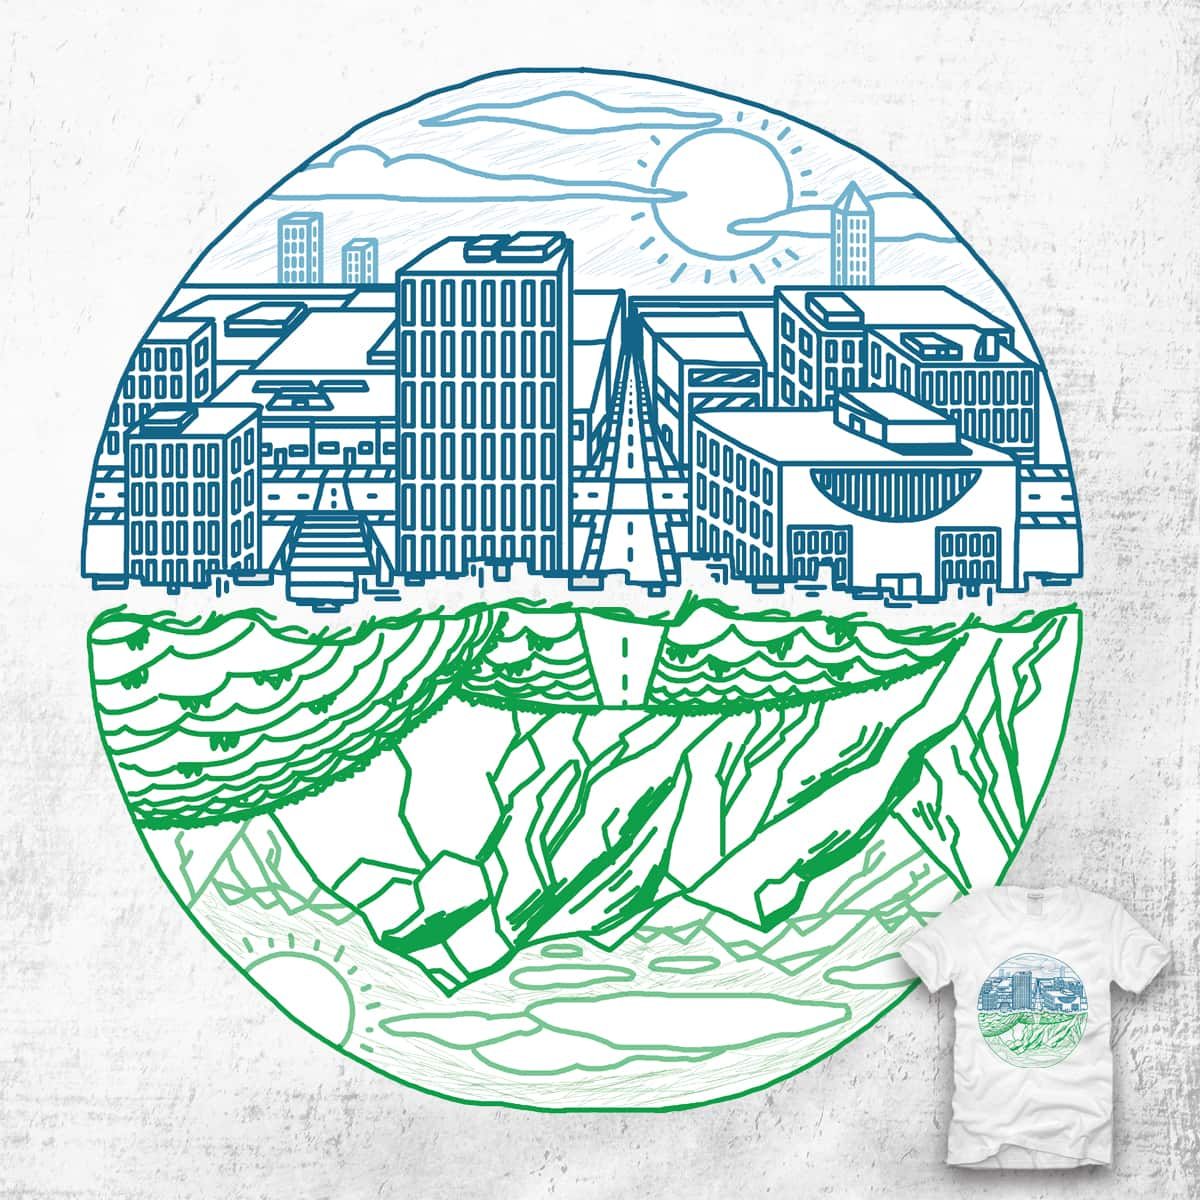 Urban over Rural by ccarretti on Threadless